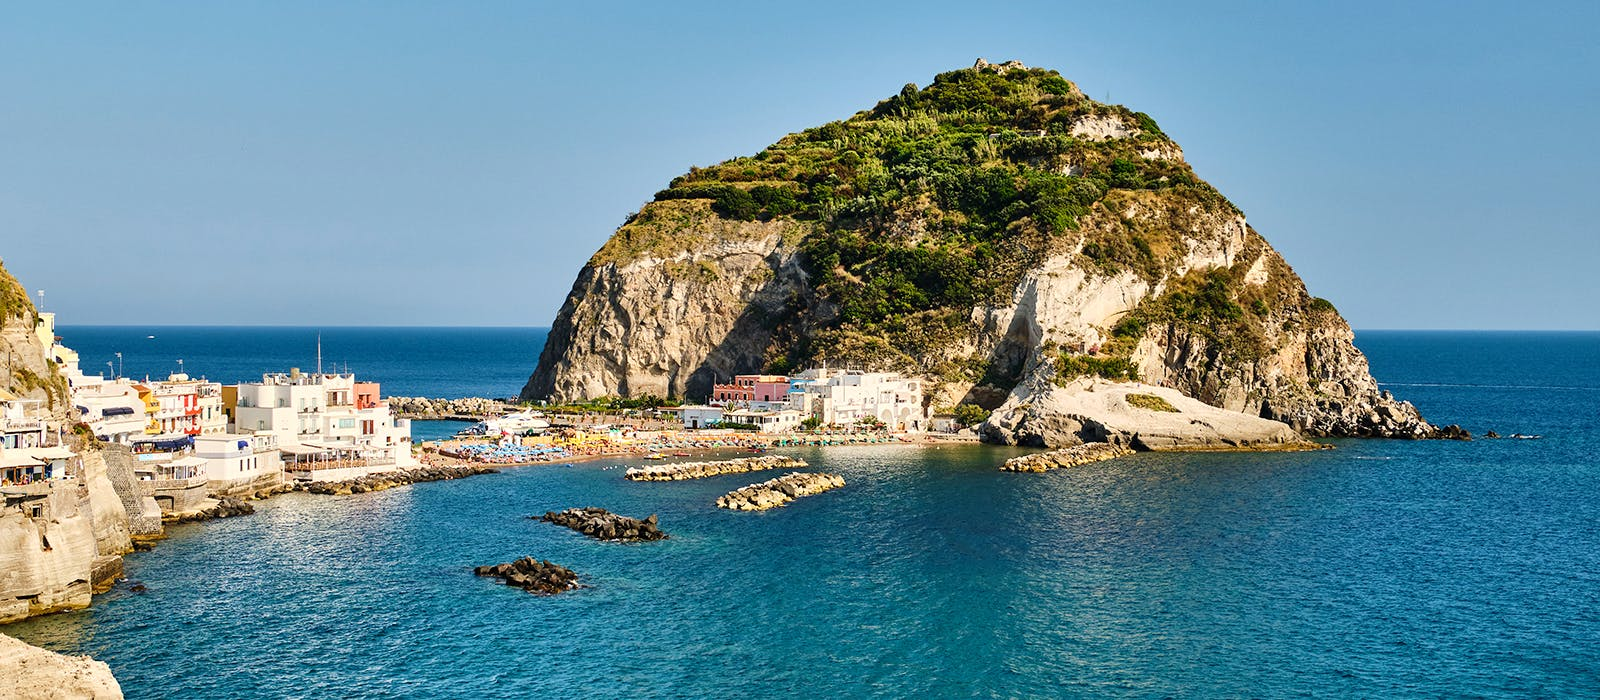 Fortified castles atop craggy outcroppings? Check. Blue coves? Check. Colorful village? Check. Italian islands (like Ischia above) have charm on lockdown.  Photo by Jan Mach/Shutterstock